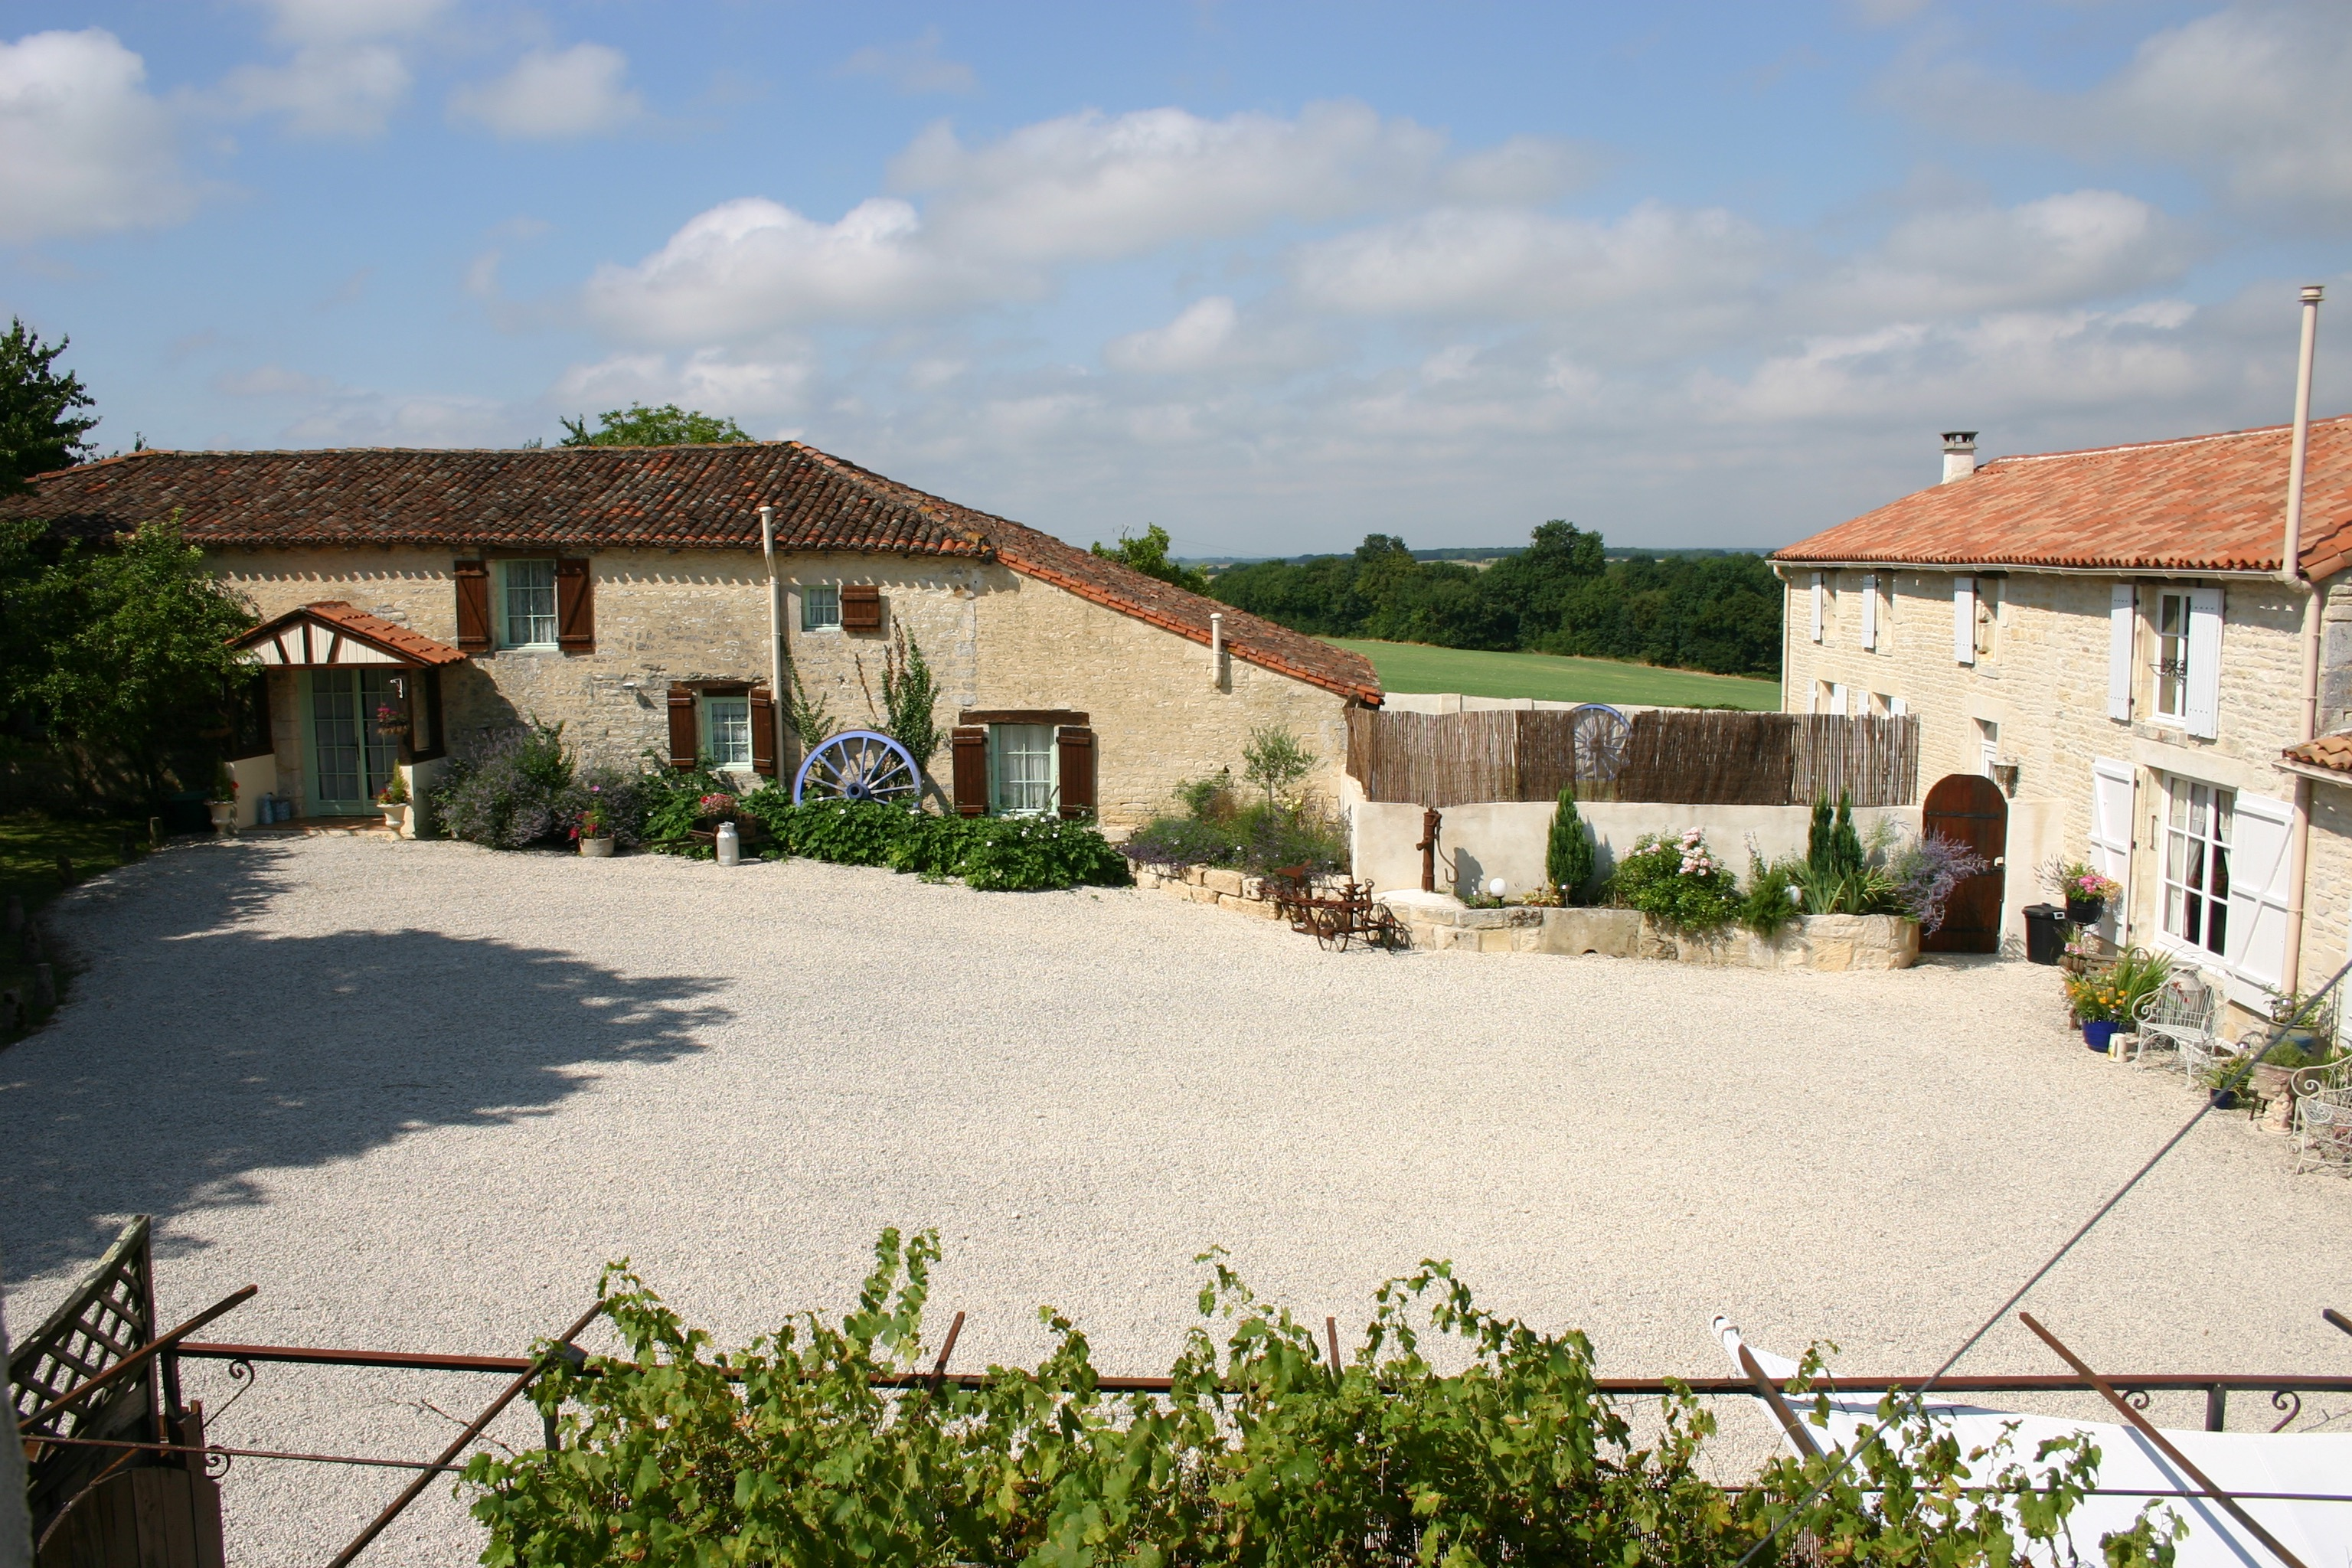 Hamlet for sale for 998,400€ in Charente-Maritime, Poitou-Charentes